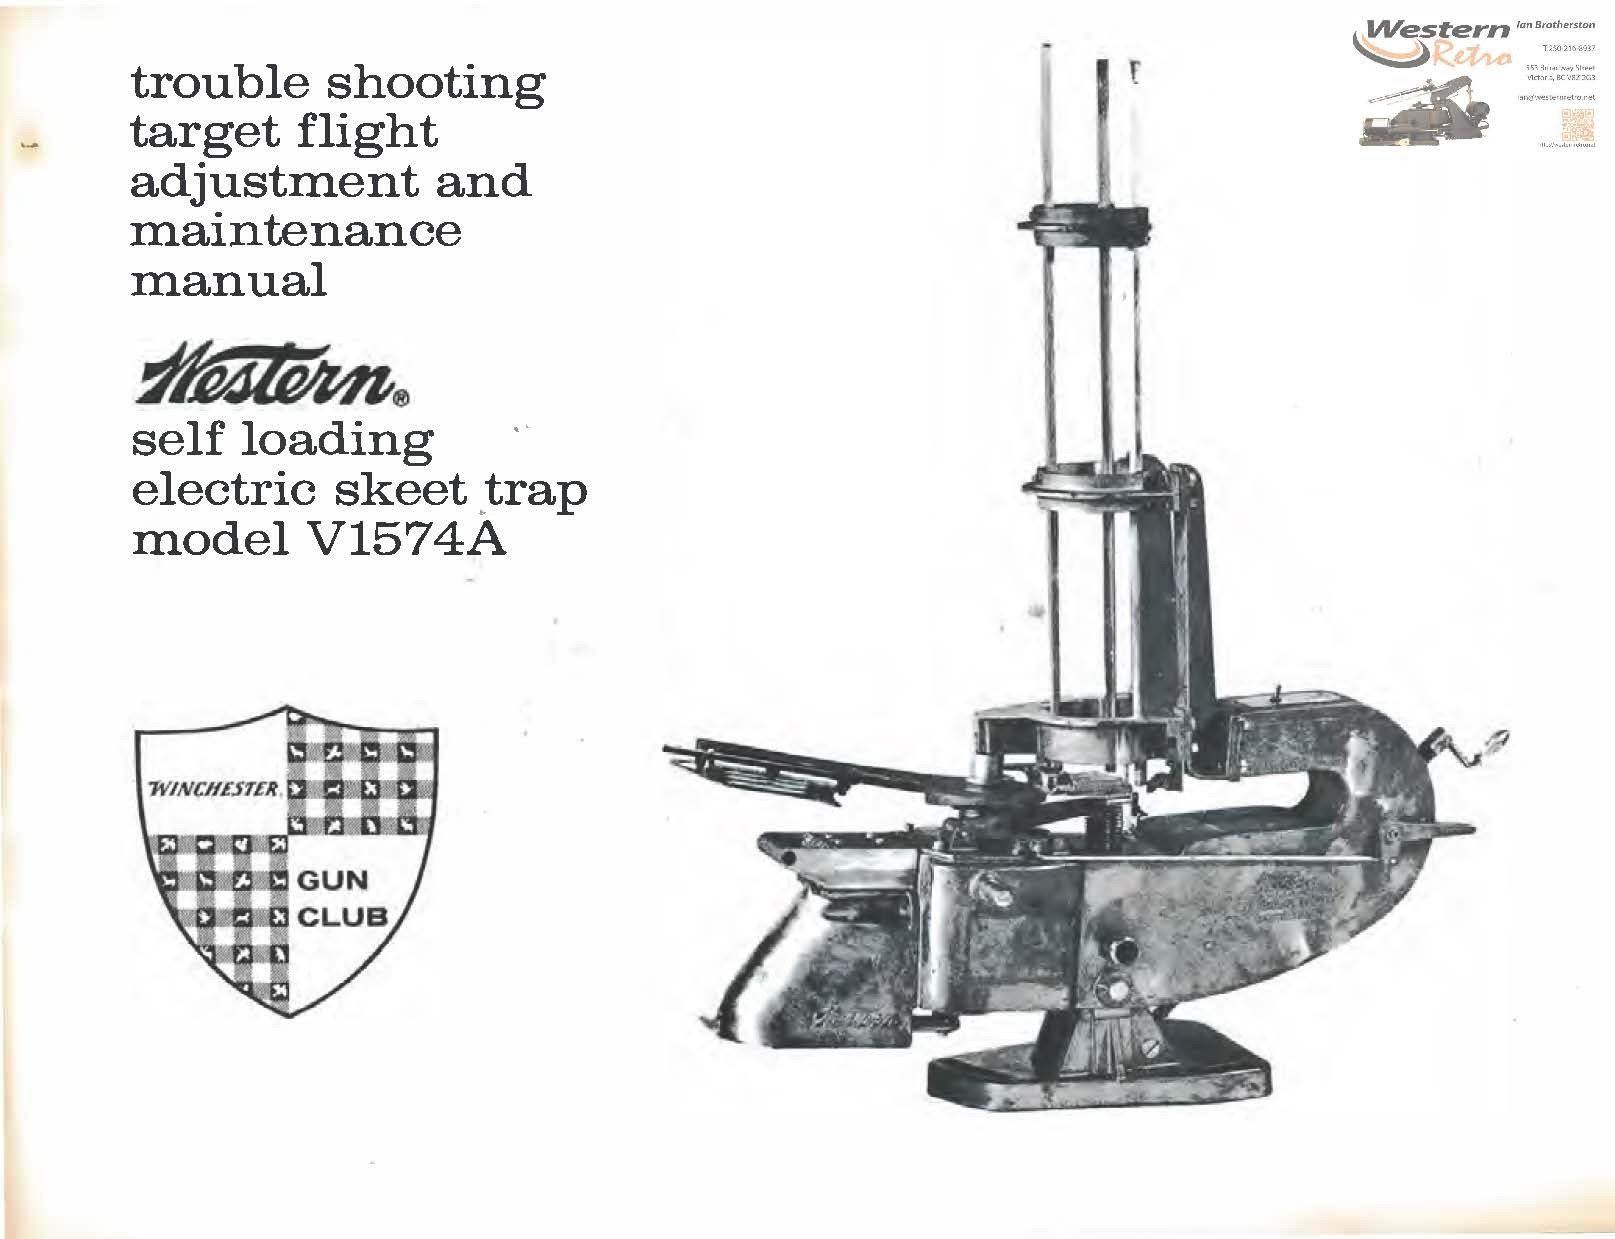 Western Self Loading Skeet Manual